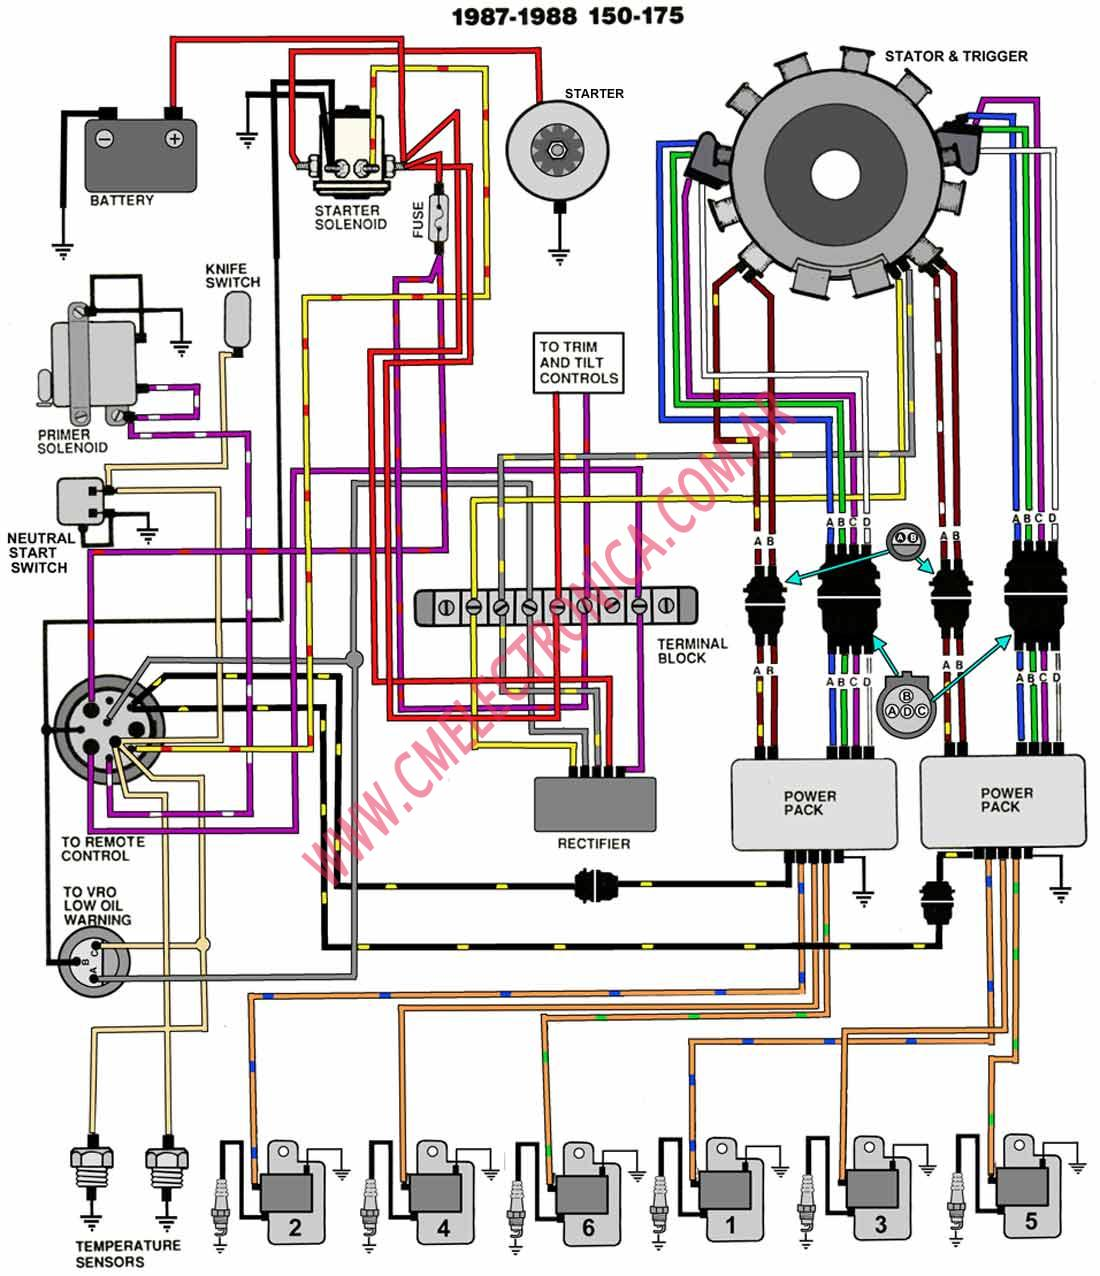 diagrama evinrude johnson 87 88 150 175